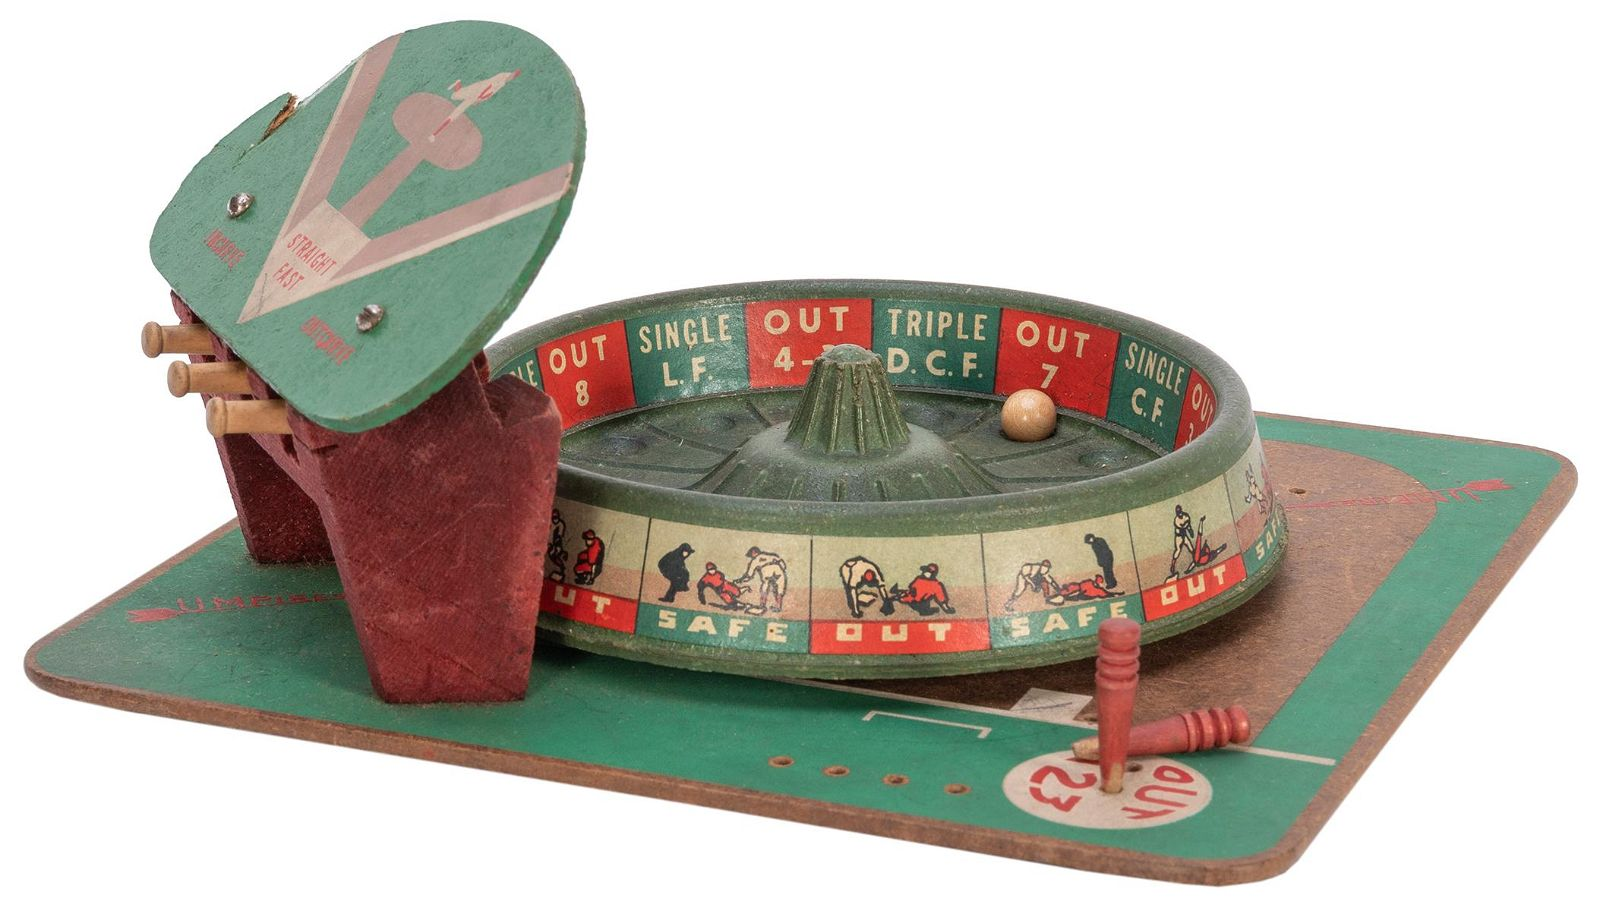 Pro Basbeall Roulette Wheel Game. PM Game Co., 1946.